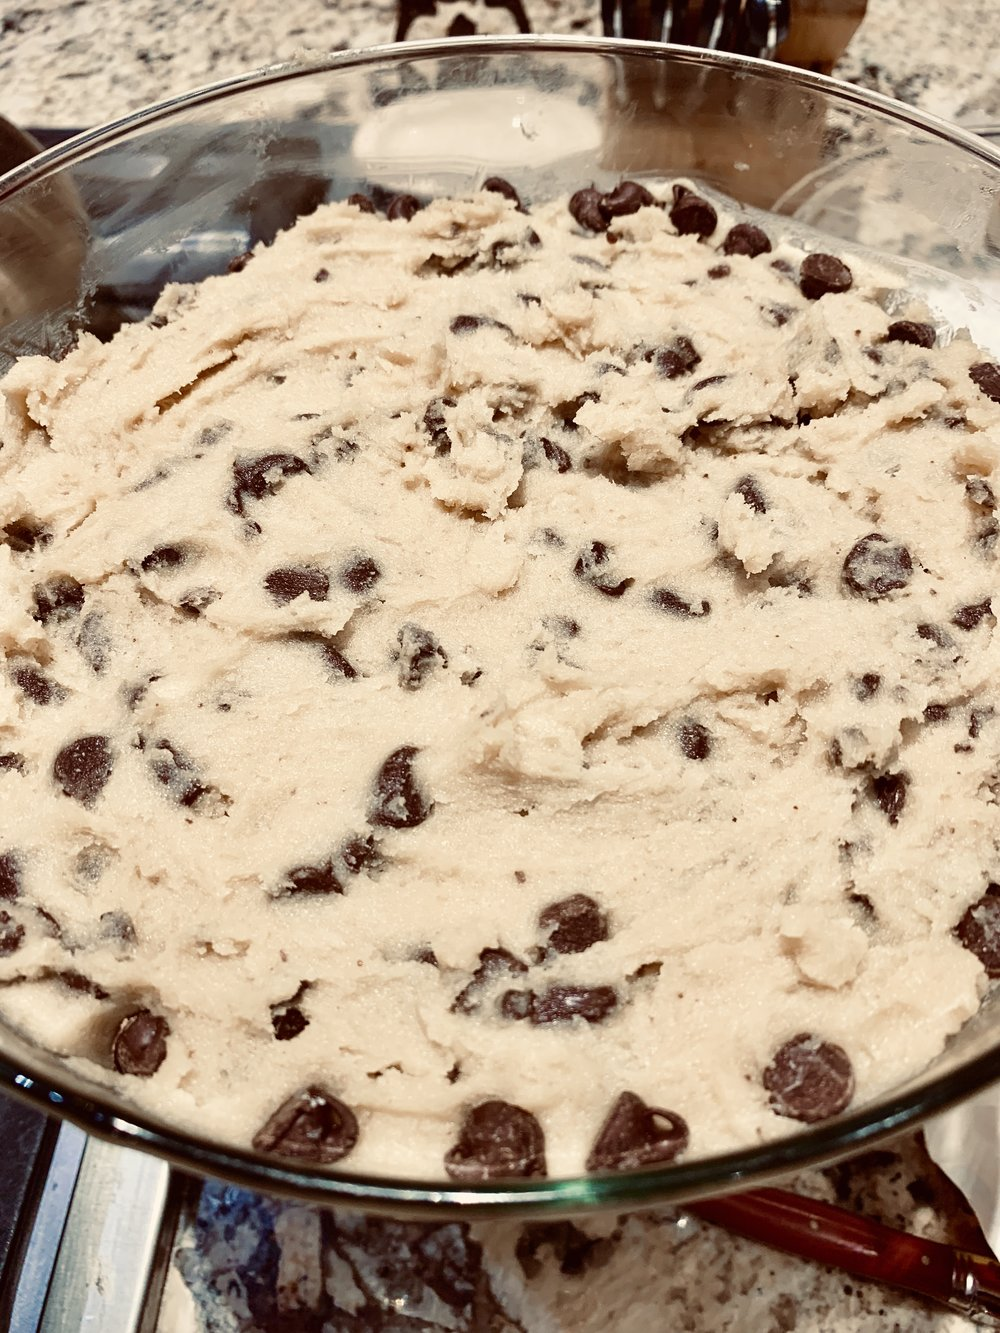 - Spread edible cookie dough on top of caramel layer. Edible cookie dough is a dessert by itself, but with all these favorites it becomes a real real crowd pleasing dessert!